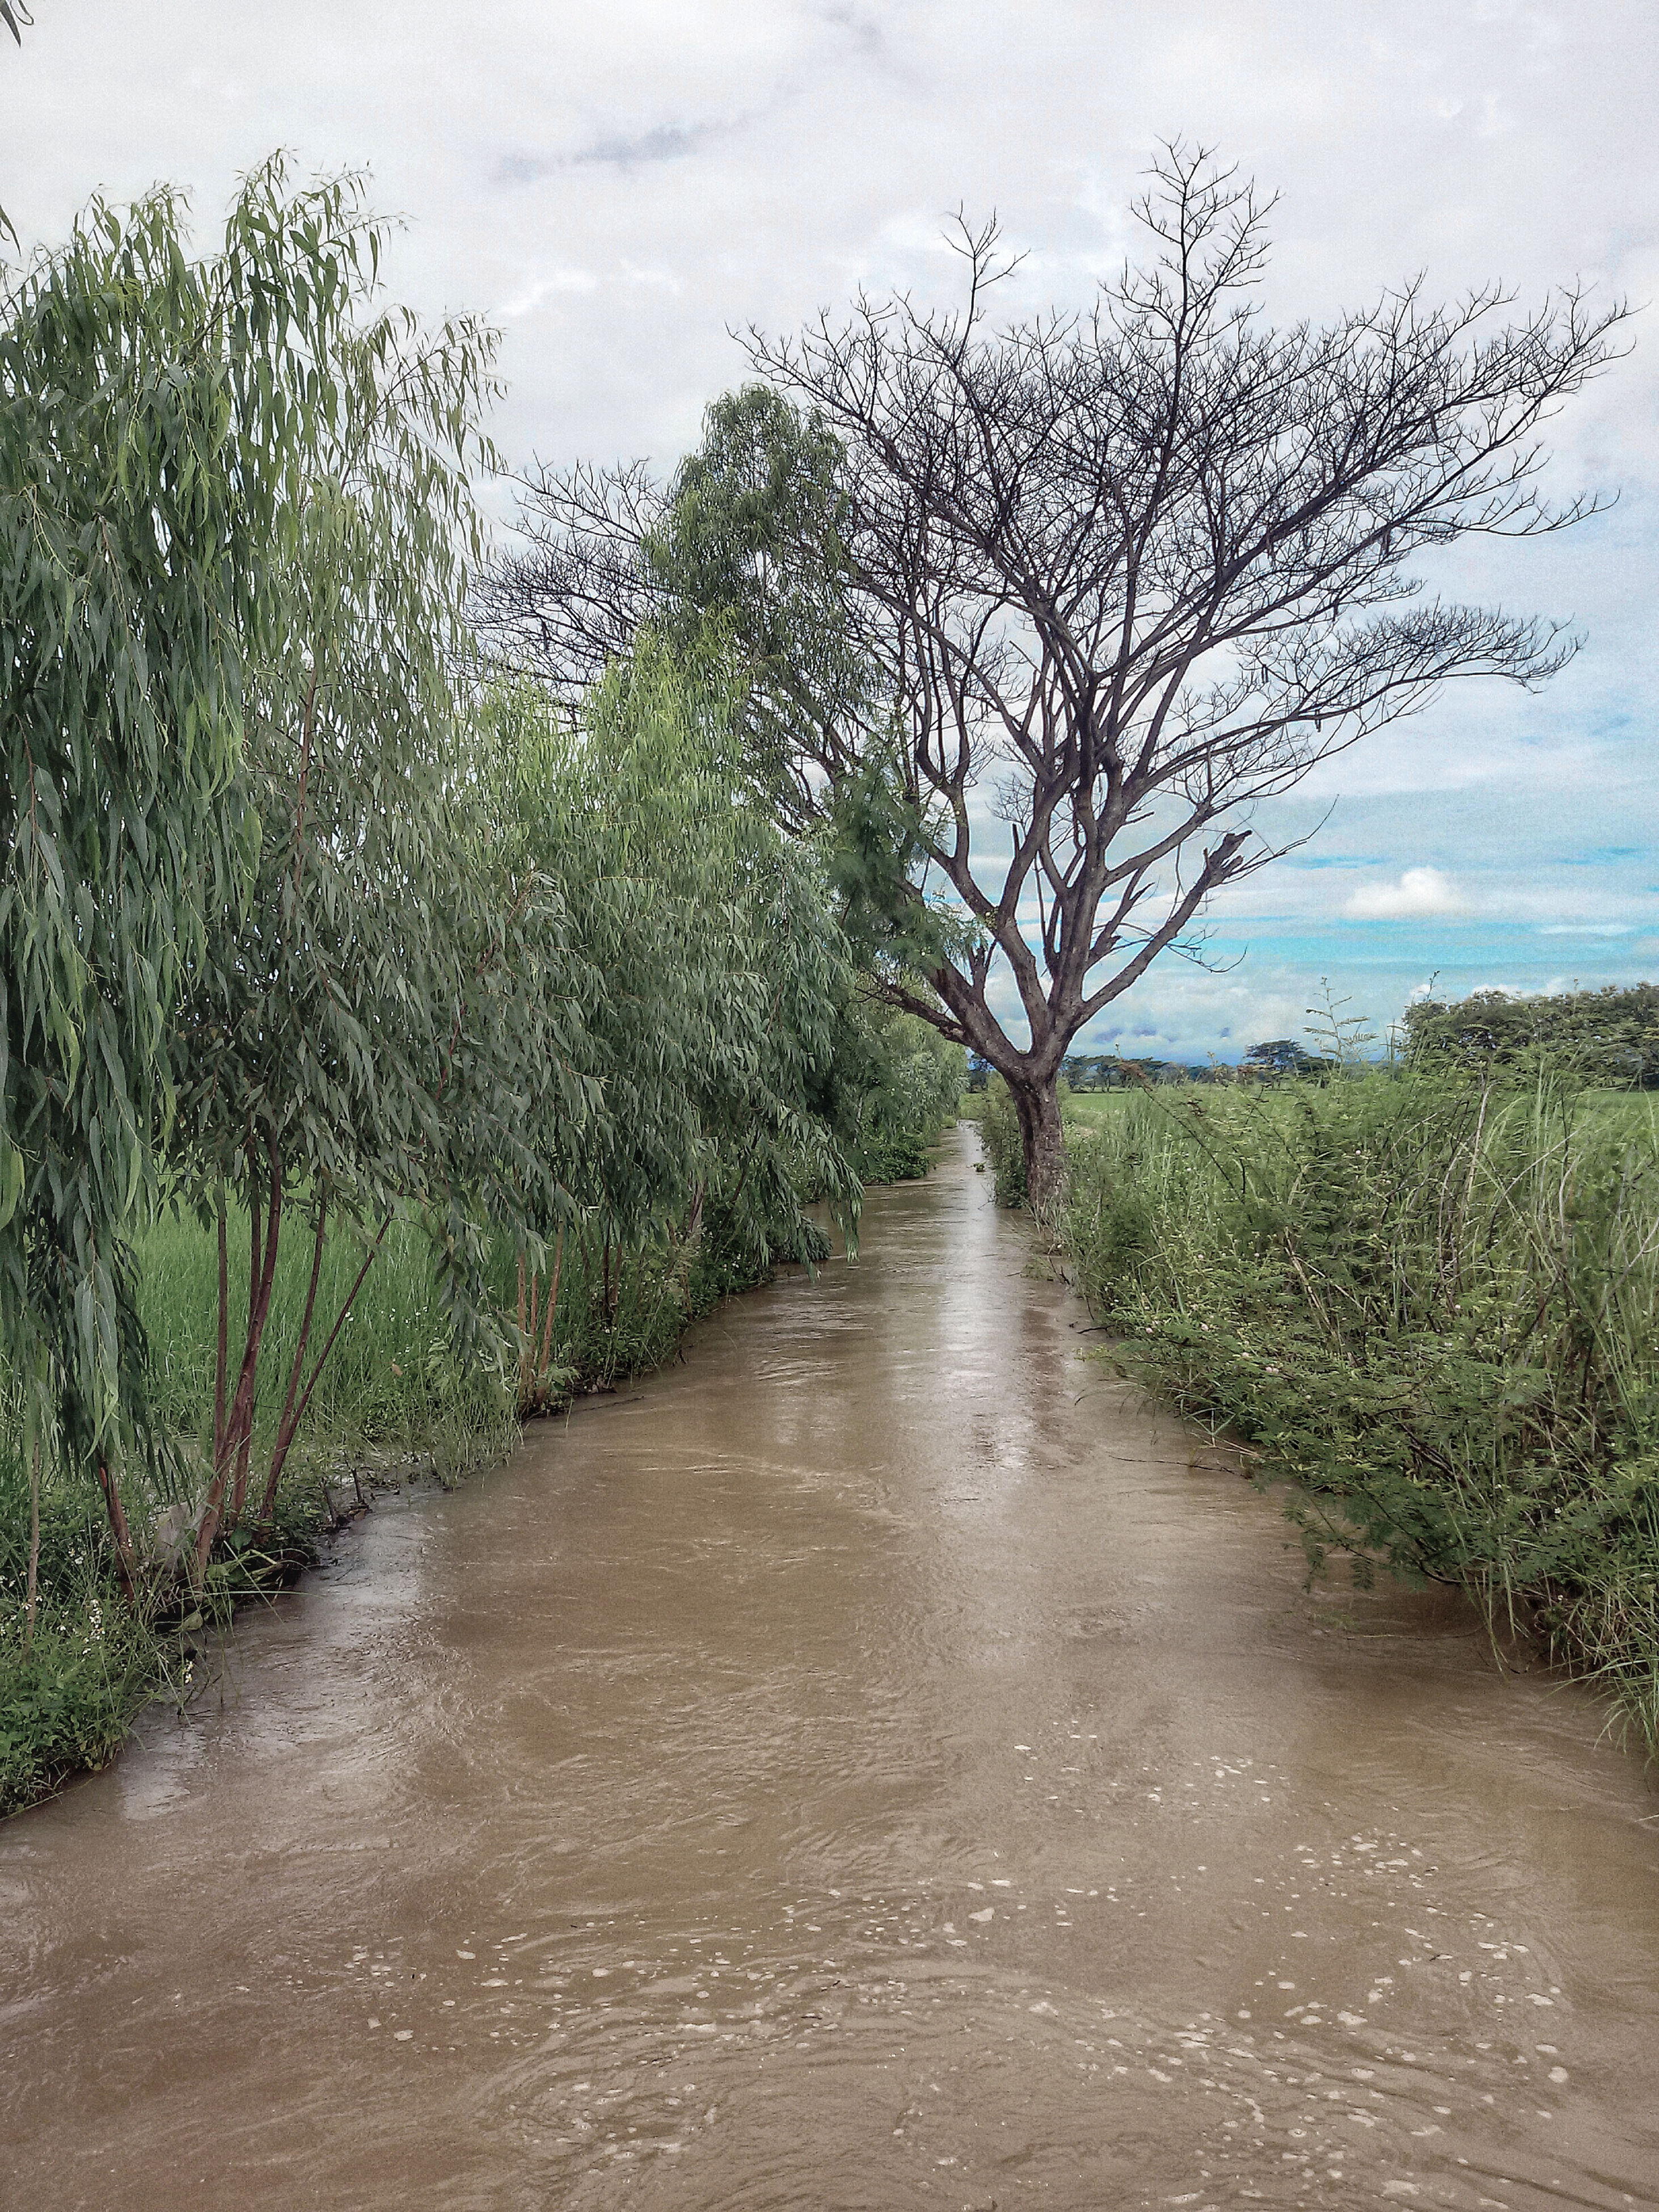 tree, water, tranquility, the way forward, tranquil scene, sky, bare tree, nature, grass, scenics, diminishing perspective, stream, beauty in nature, dirt road, branch, landscape, river, growth, day, vanishing point